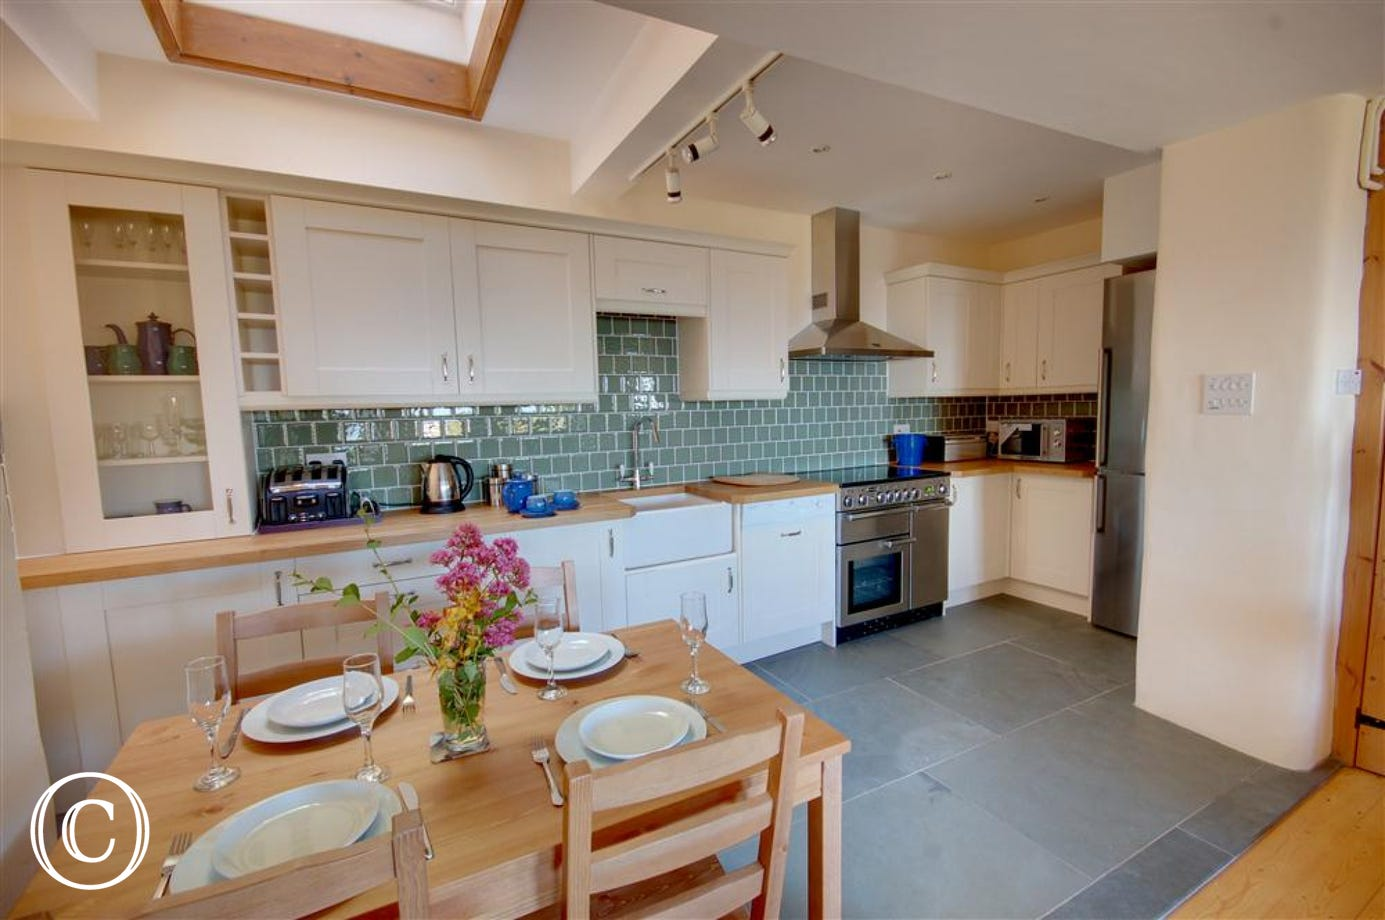 Fully fitted kitchen with tiled floor and all you need